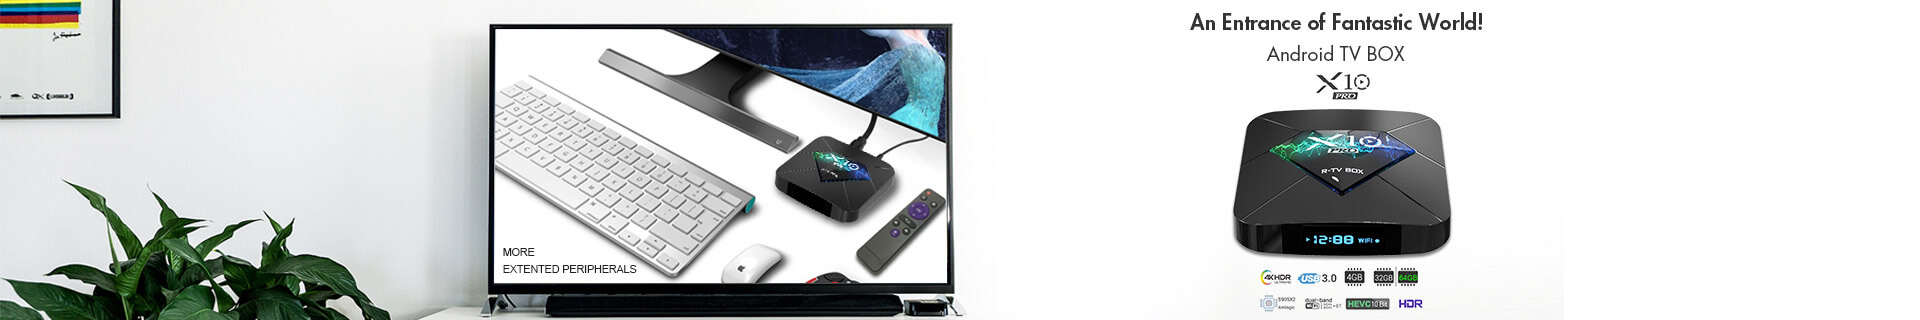 x10 4K Android TV Box